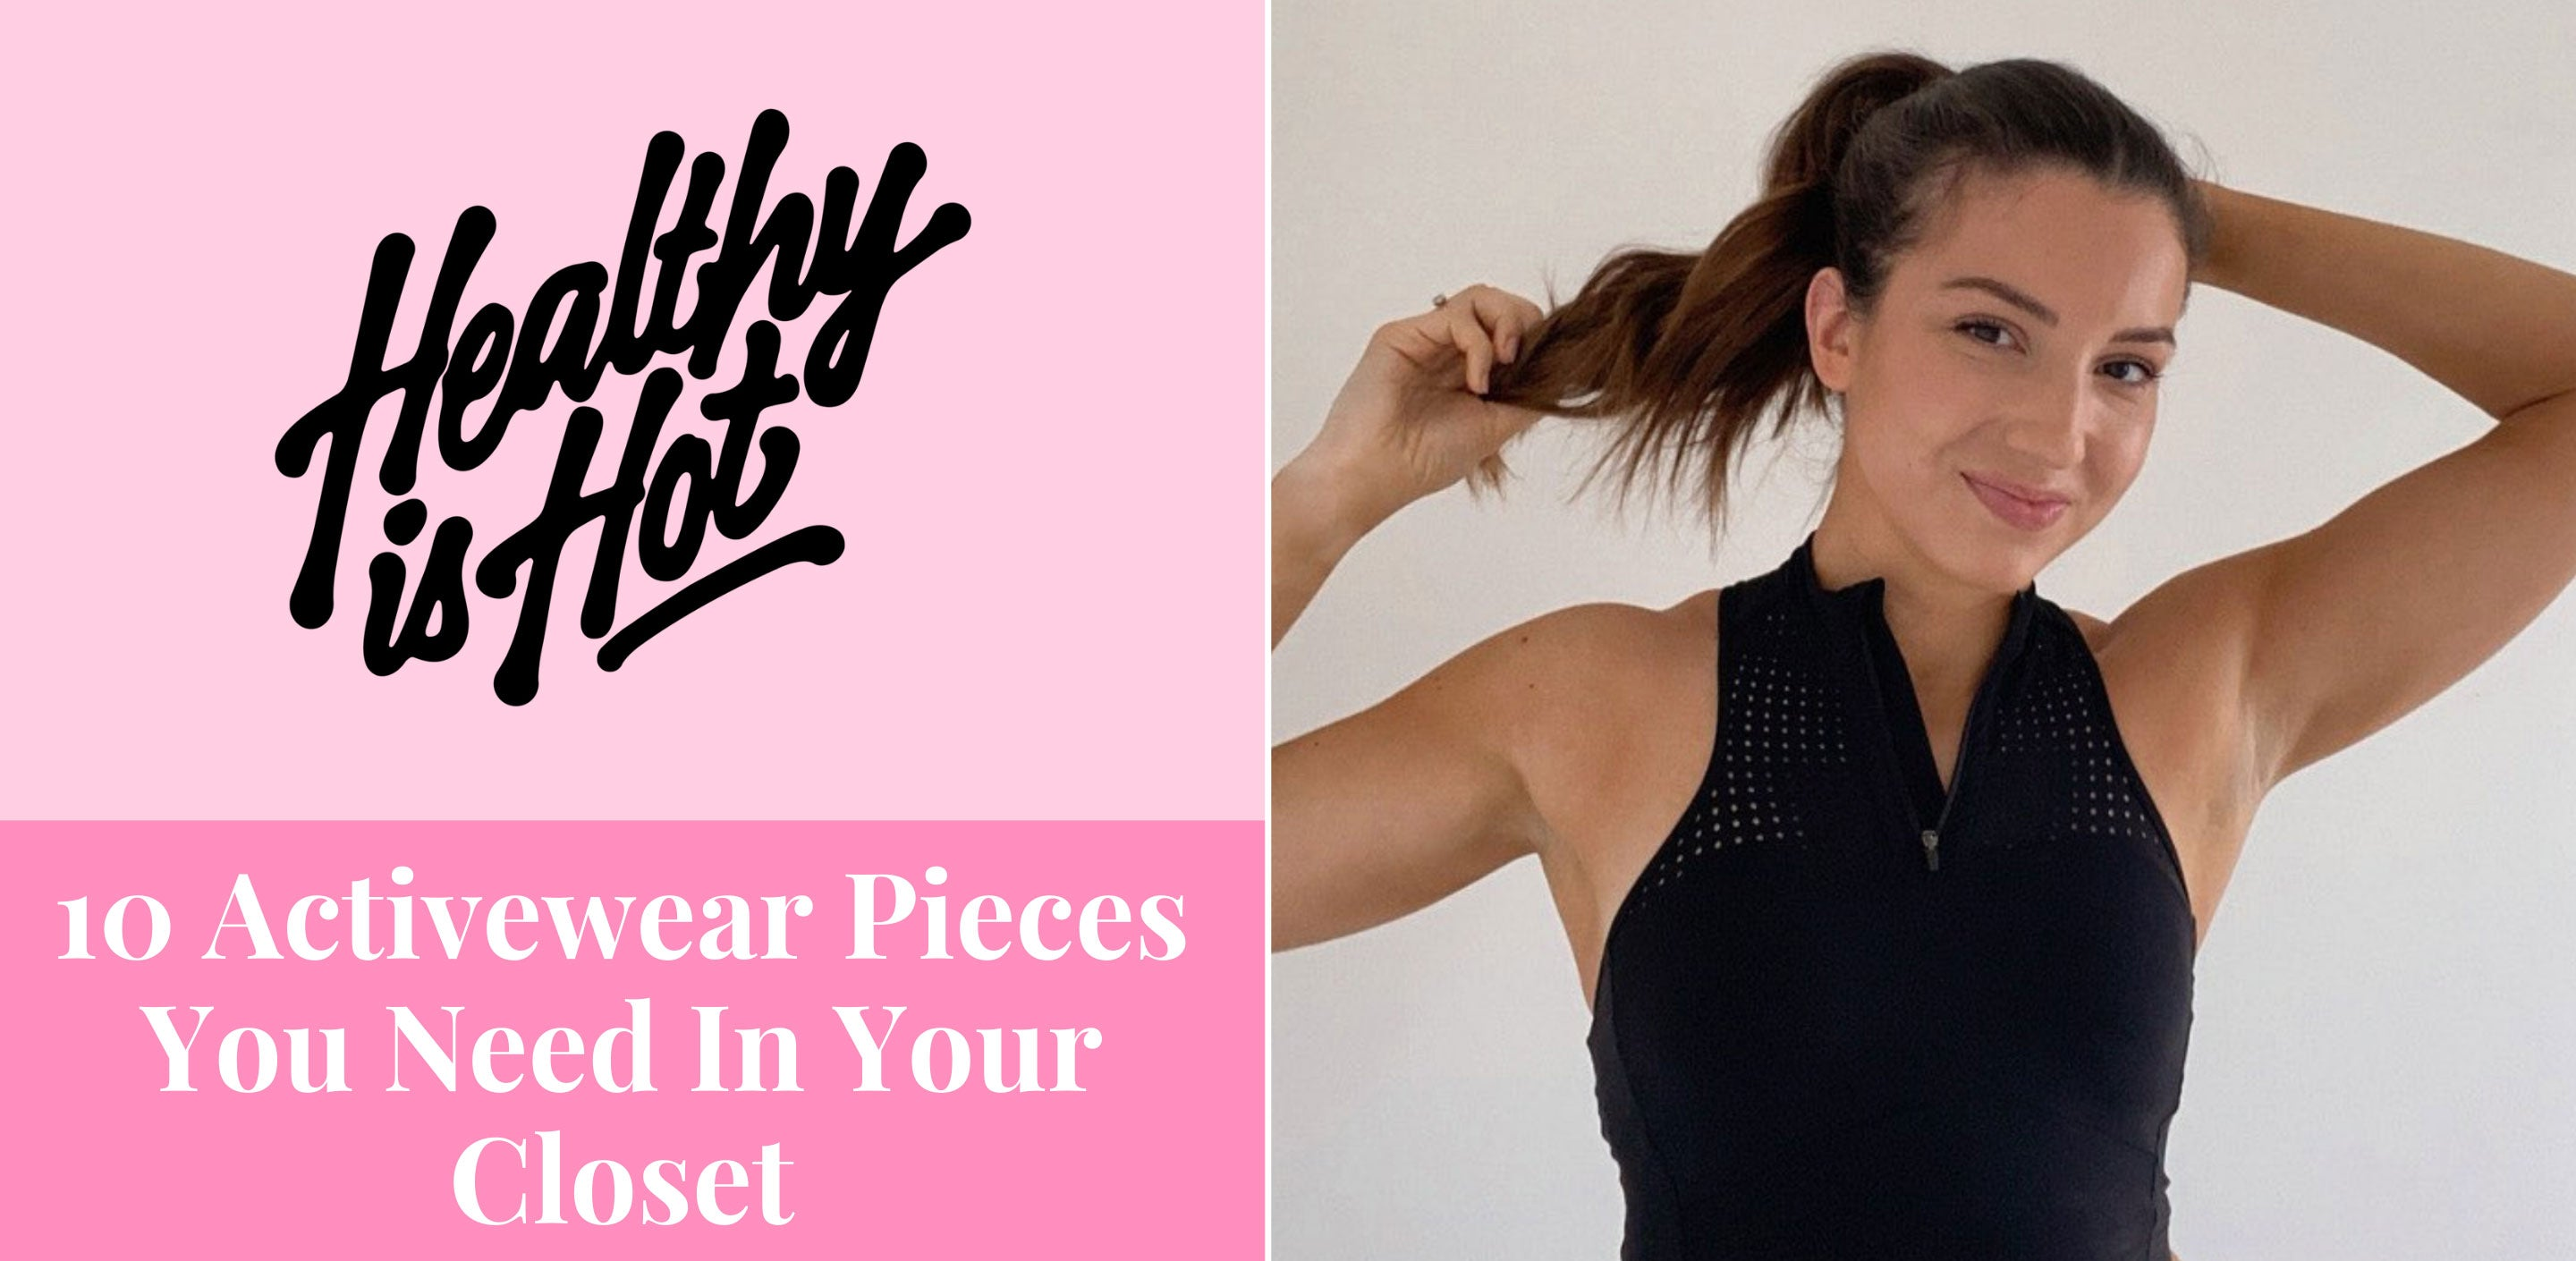 Healthy is Hot - Flirty Pineapple Feature in 10 Activewear Pieces You Need In Your Closet